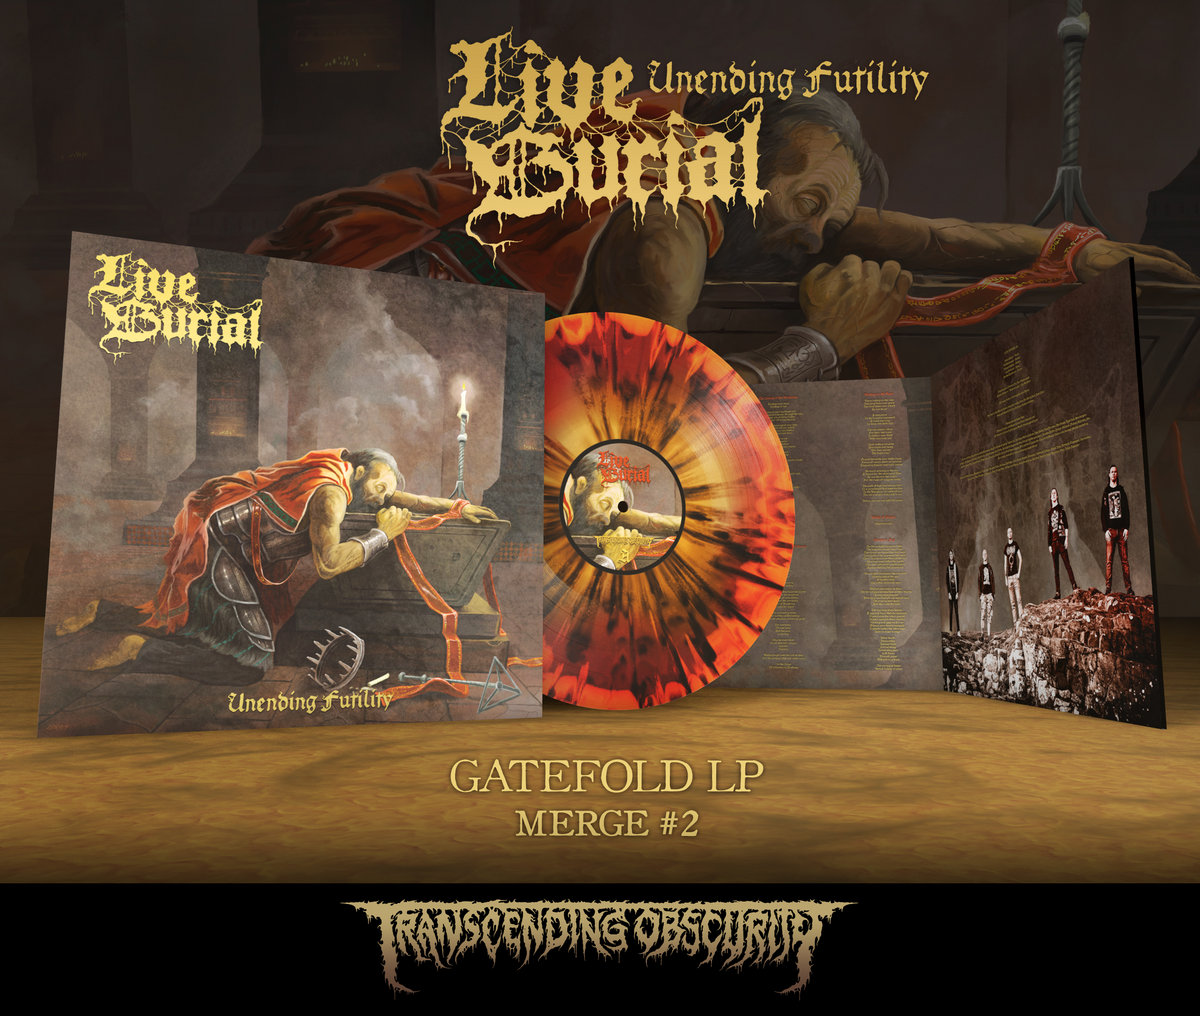 LIVE BURIAL Merge #2 Gatefold LP with metallic effect and embossing/UV (Limited to 75)